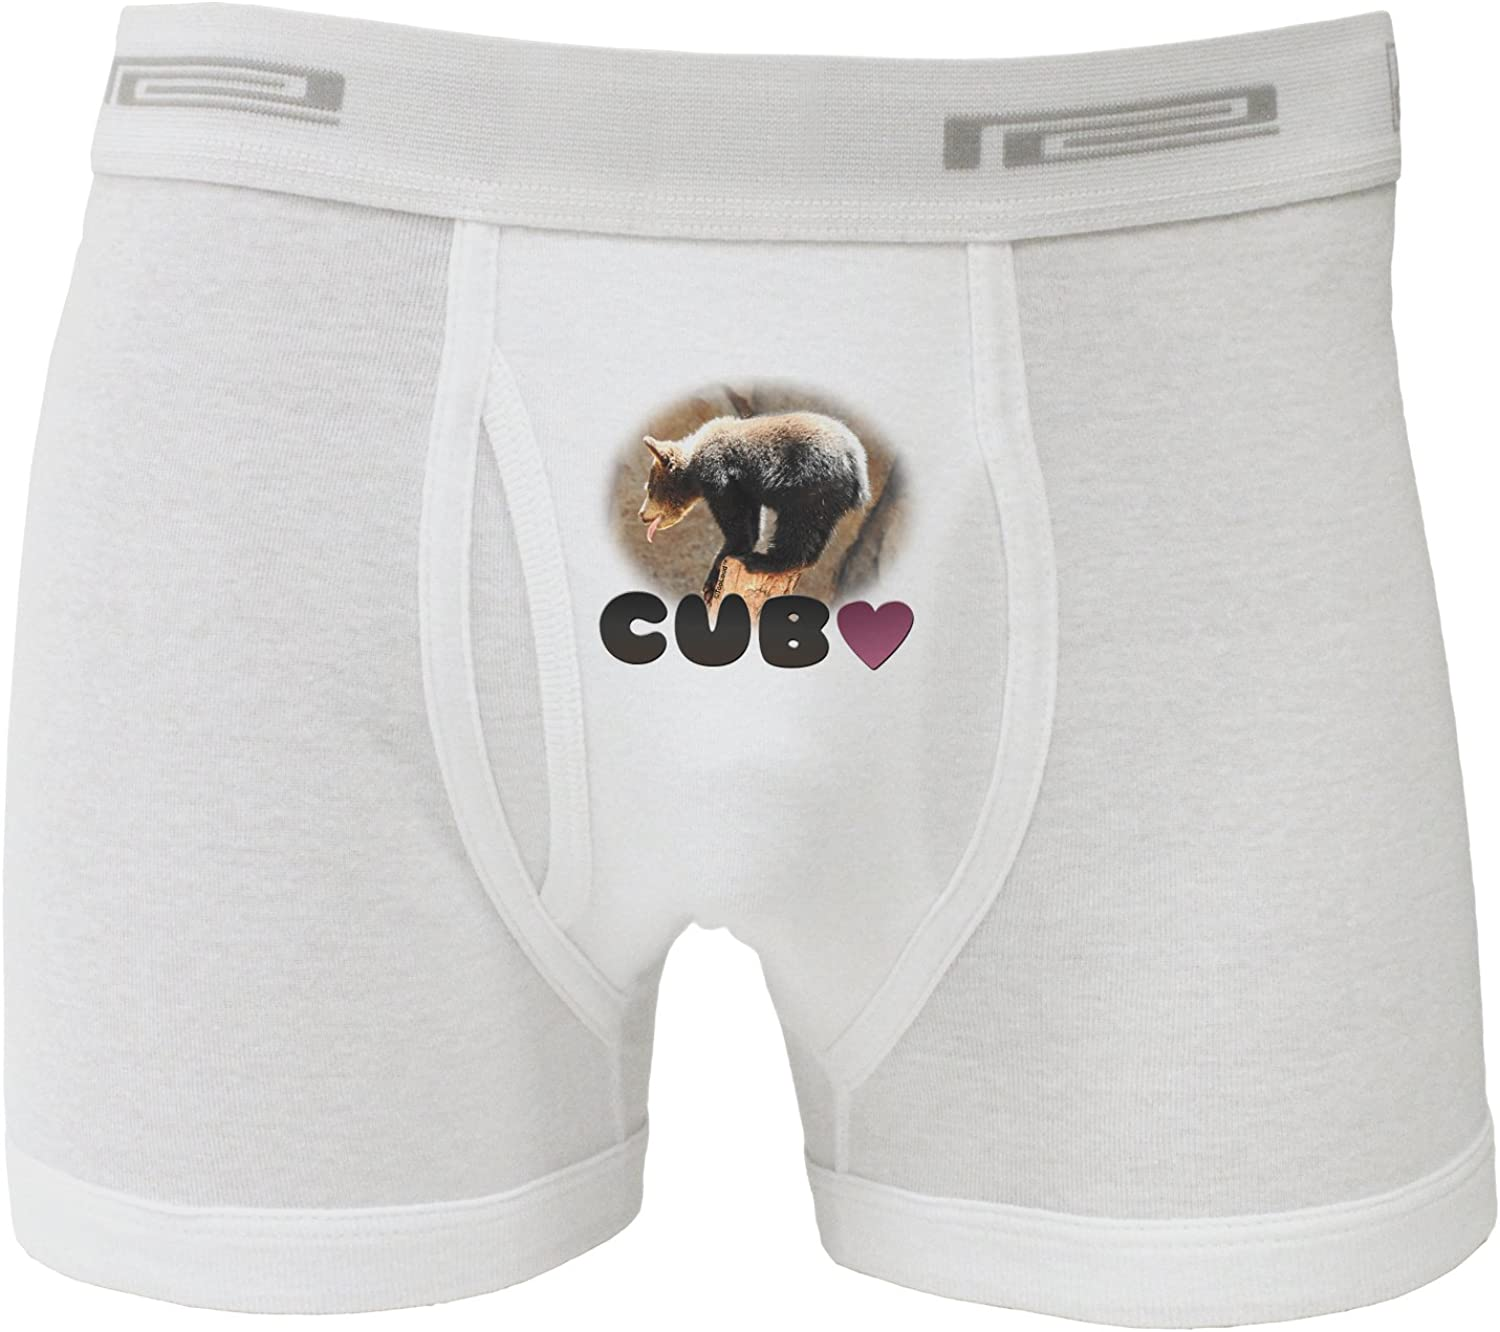 TooLoud Balancing Bear Cub with Text Boxer Briefs